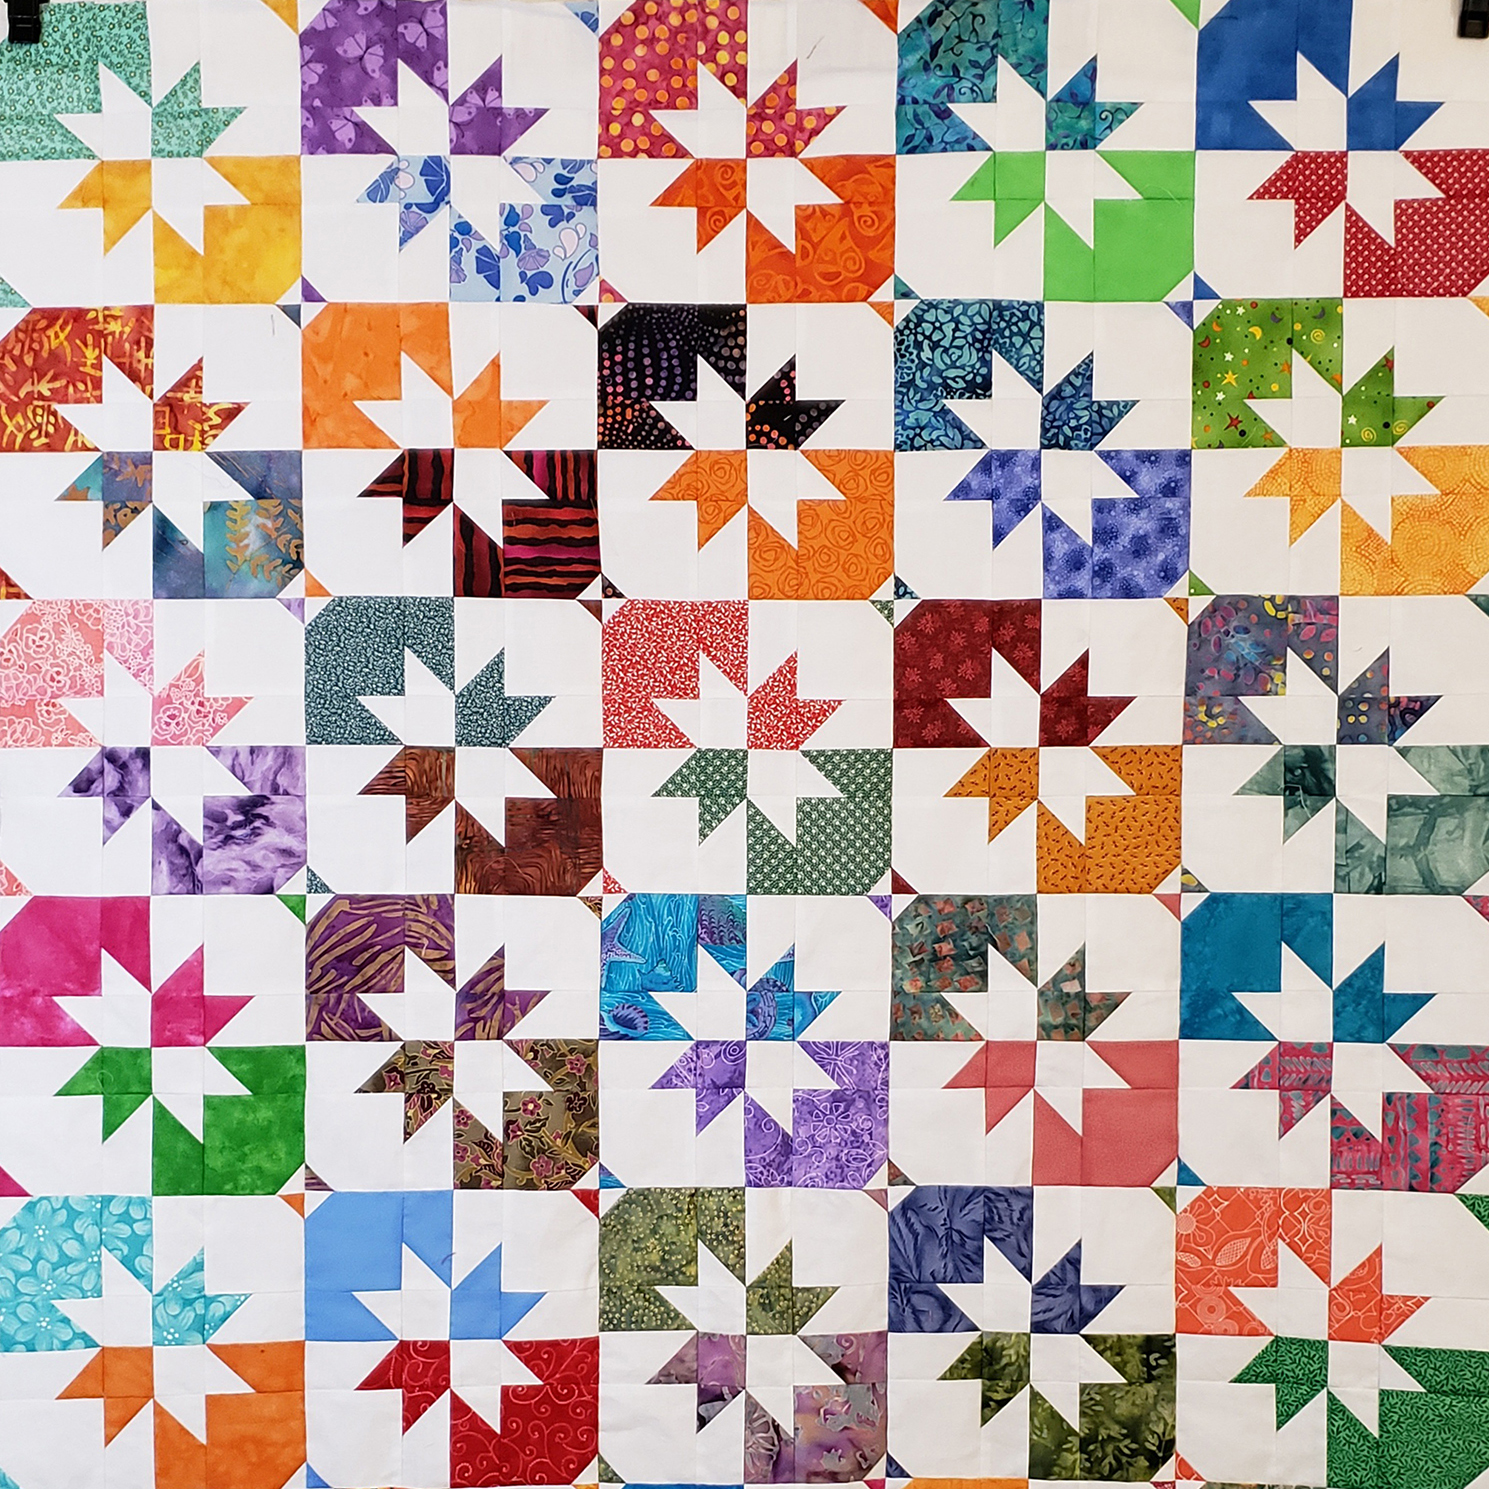 Standard Disappearing Hourglass quilt